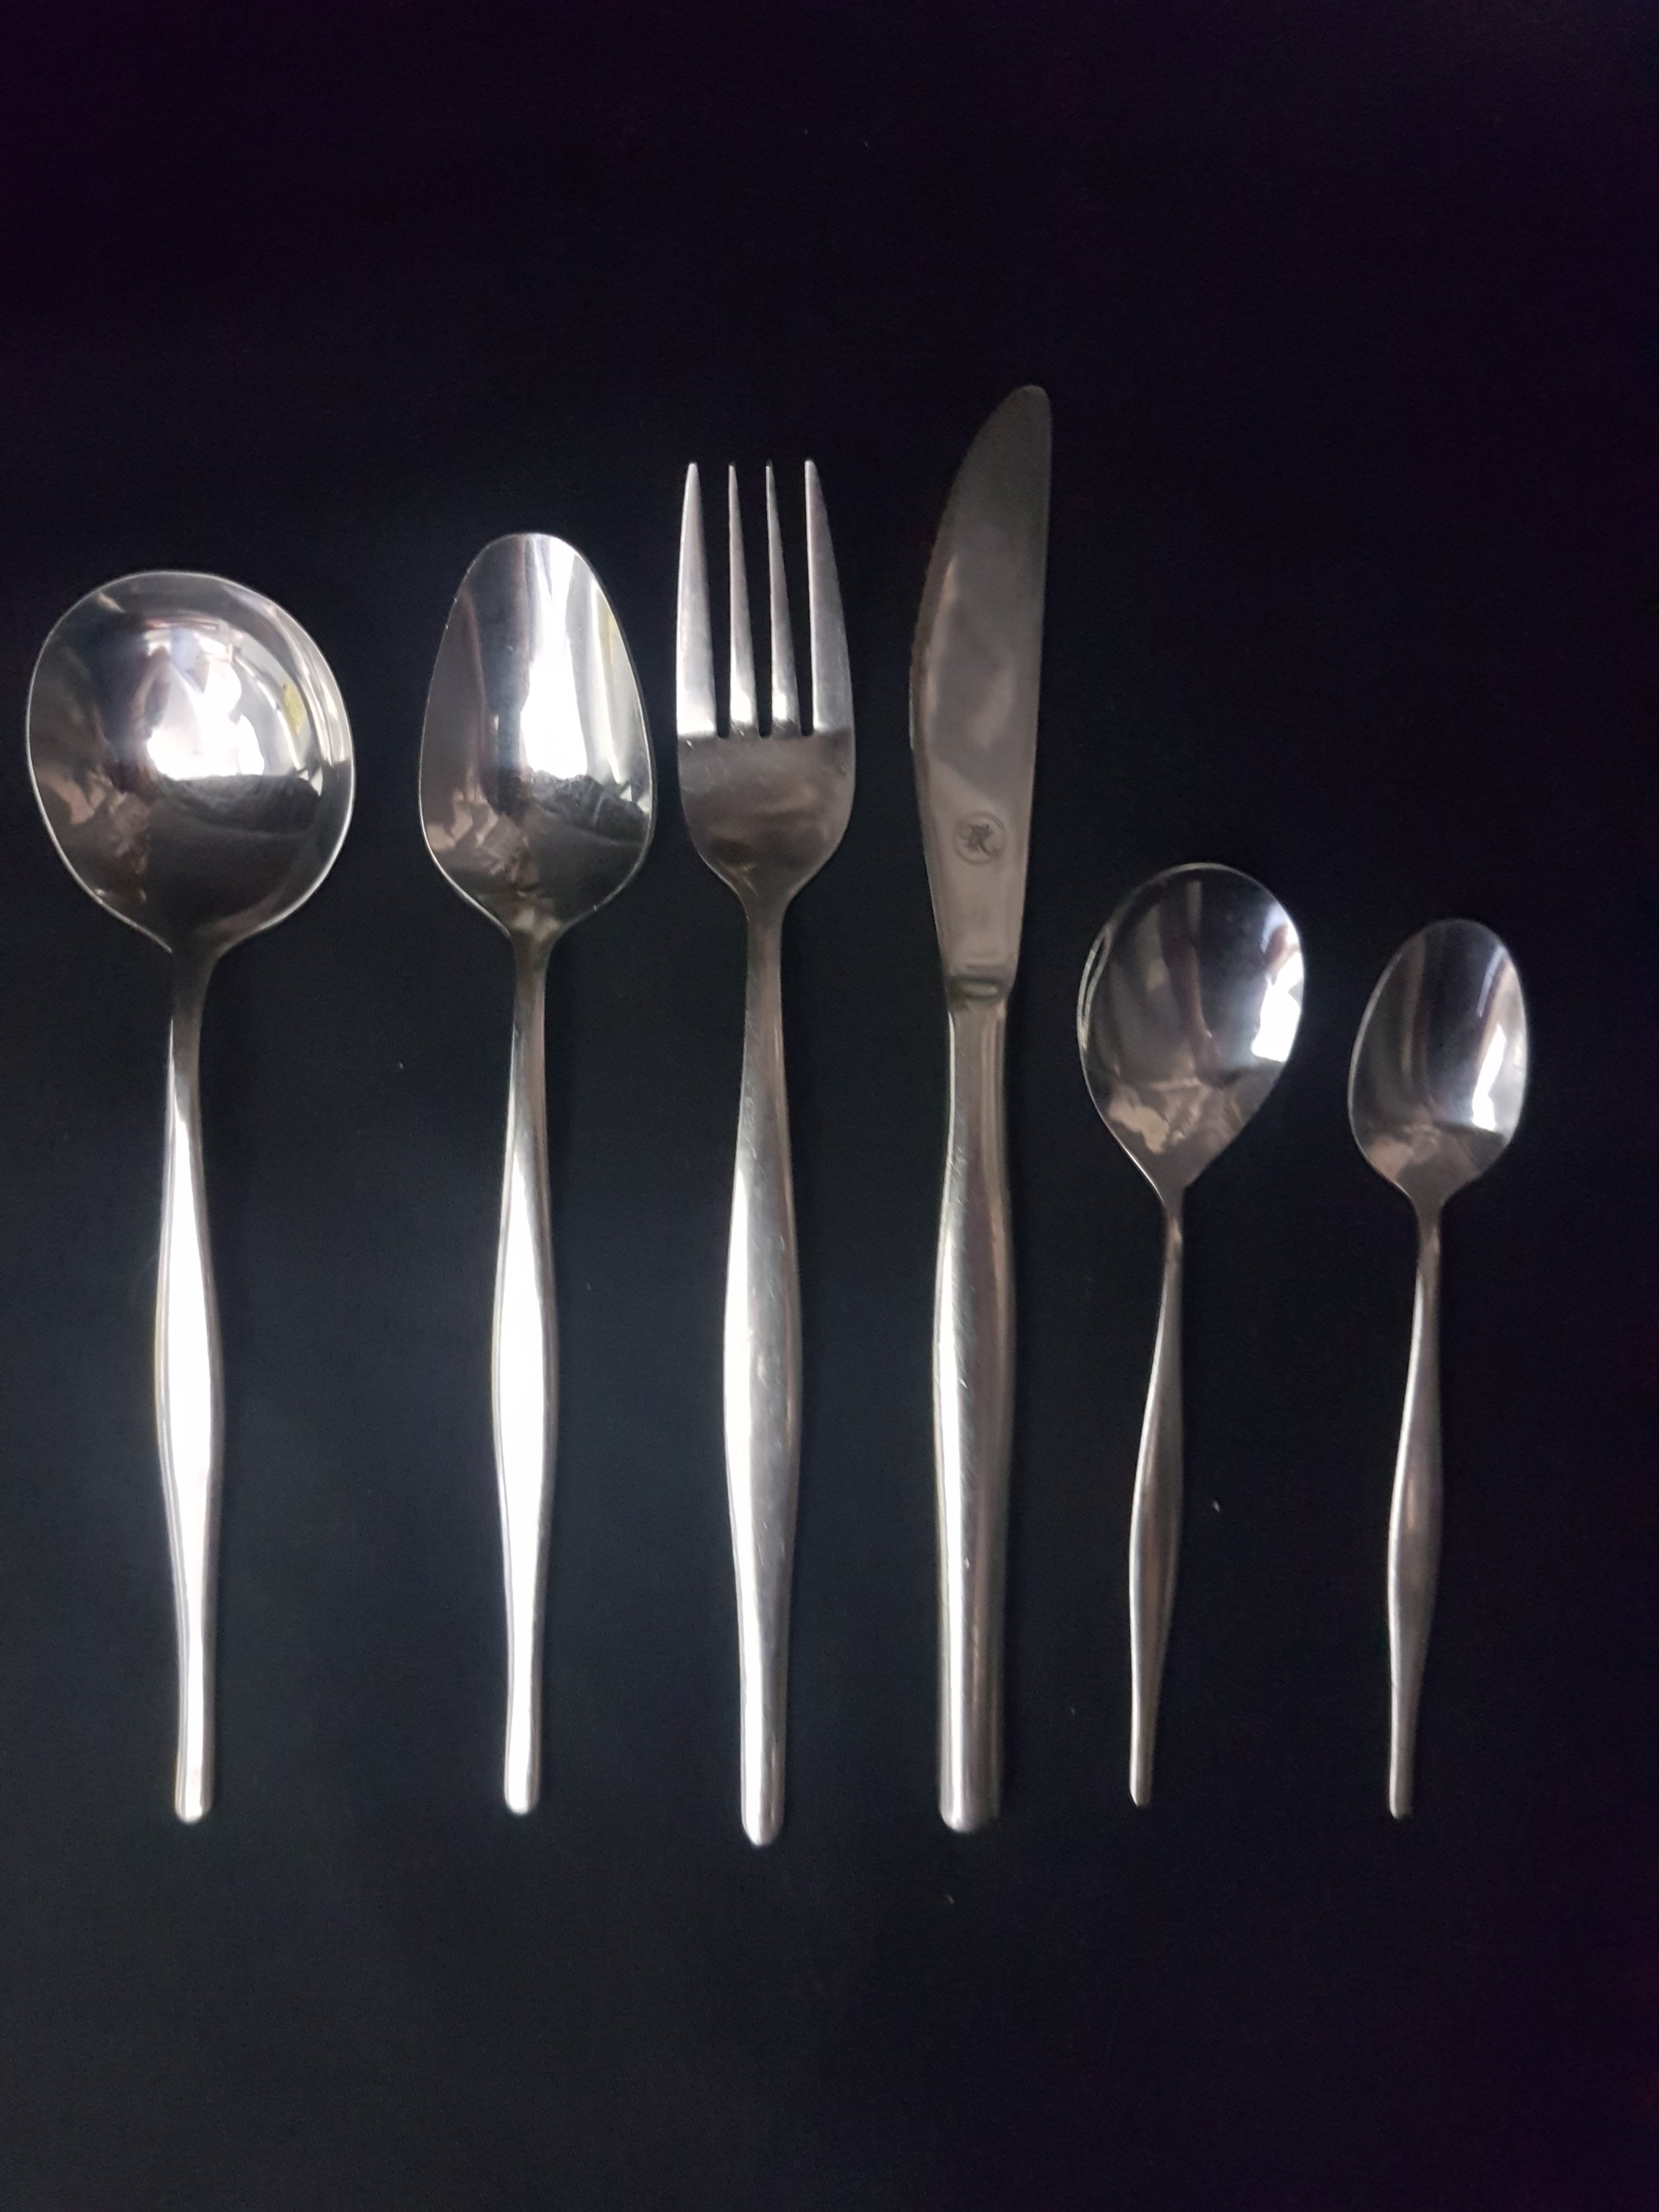 Stainless steel base range - This range used for large events we have surplus stock.Soup Spoon .44c eaDessert Spoon .44c eaDinner Fork .44c eaDinner Knife .44c eaFruit Spoon .44c eaTeaspoon .39c ea